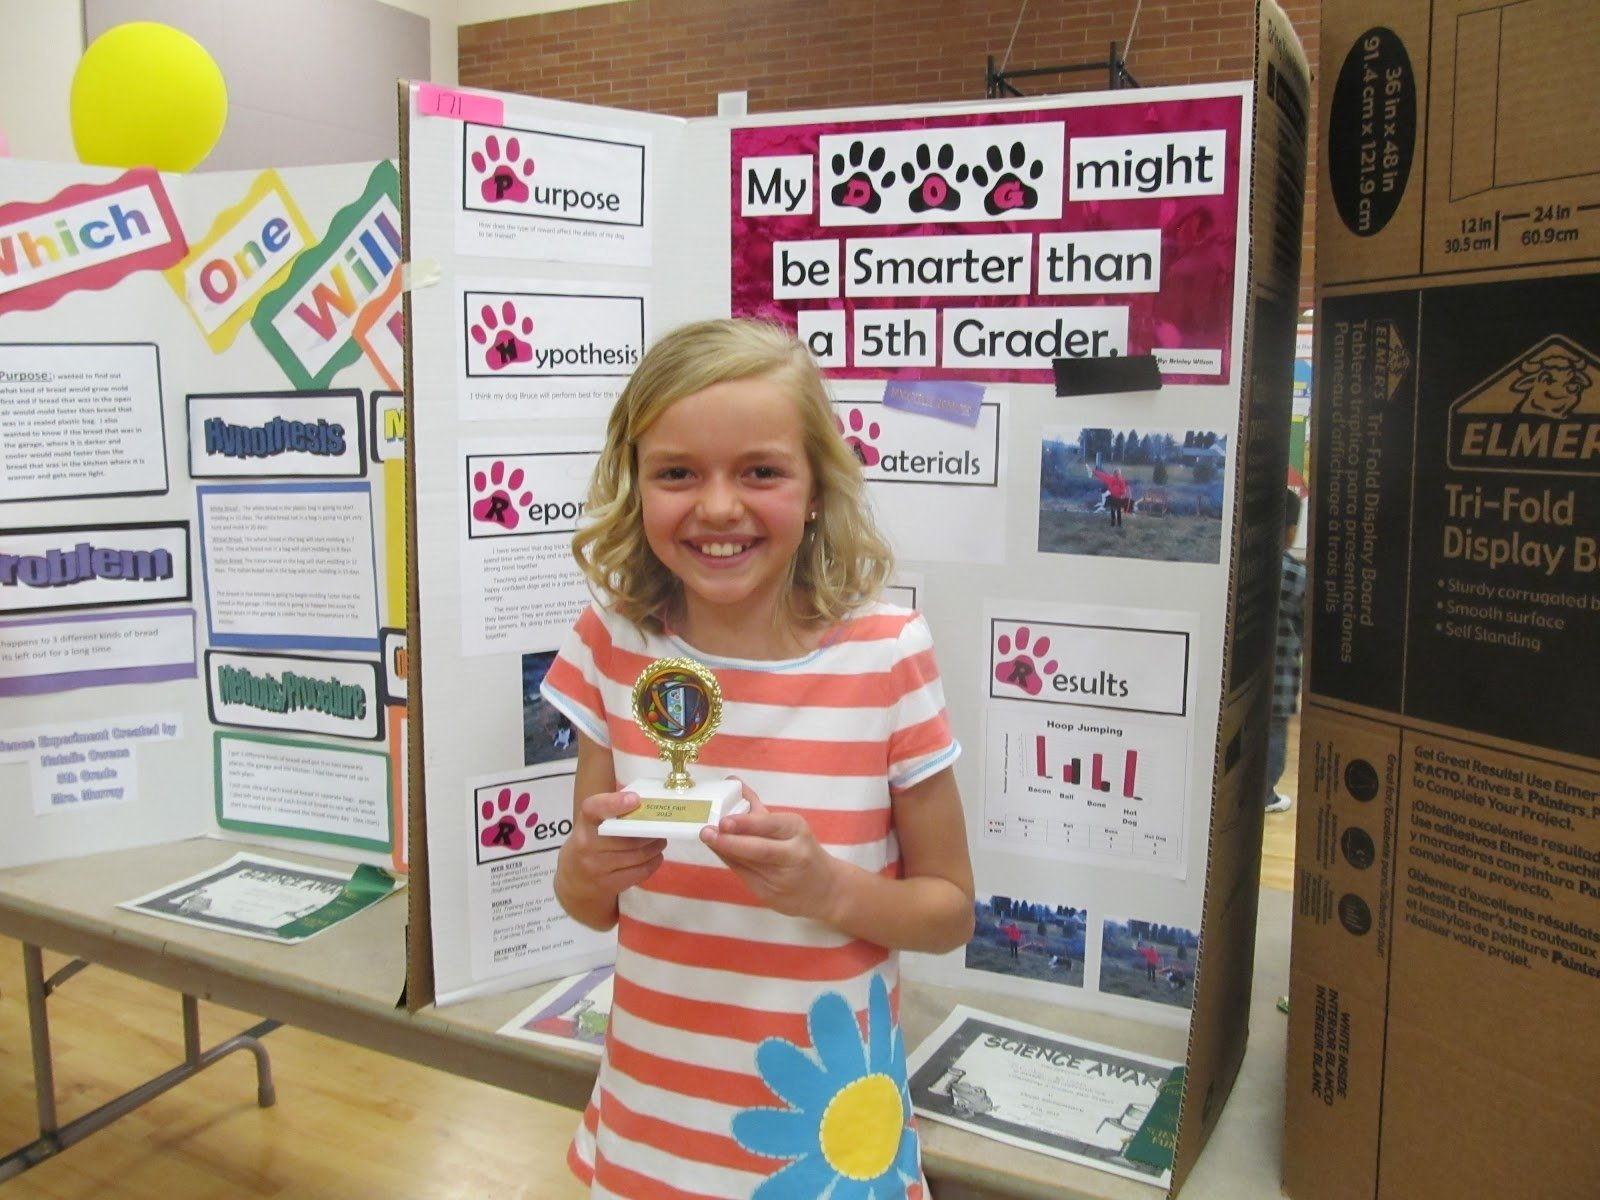 10 Most Popular Science Fair Project Ideas For Kids In 5Th Grade the science of my life updated declo science fair with newspaper 36 2020